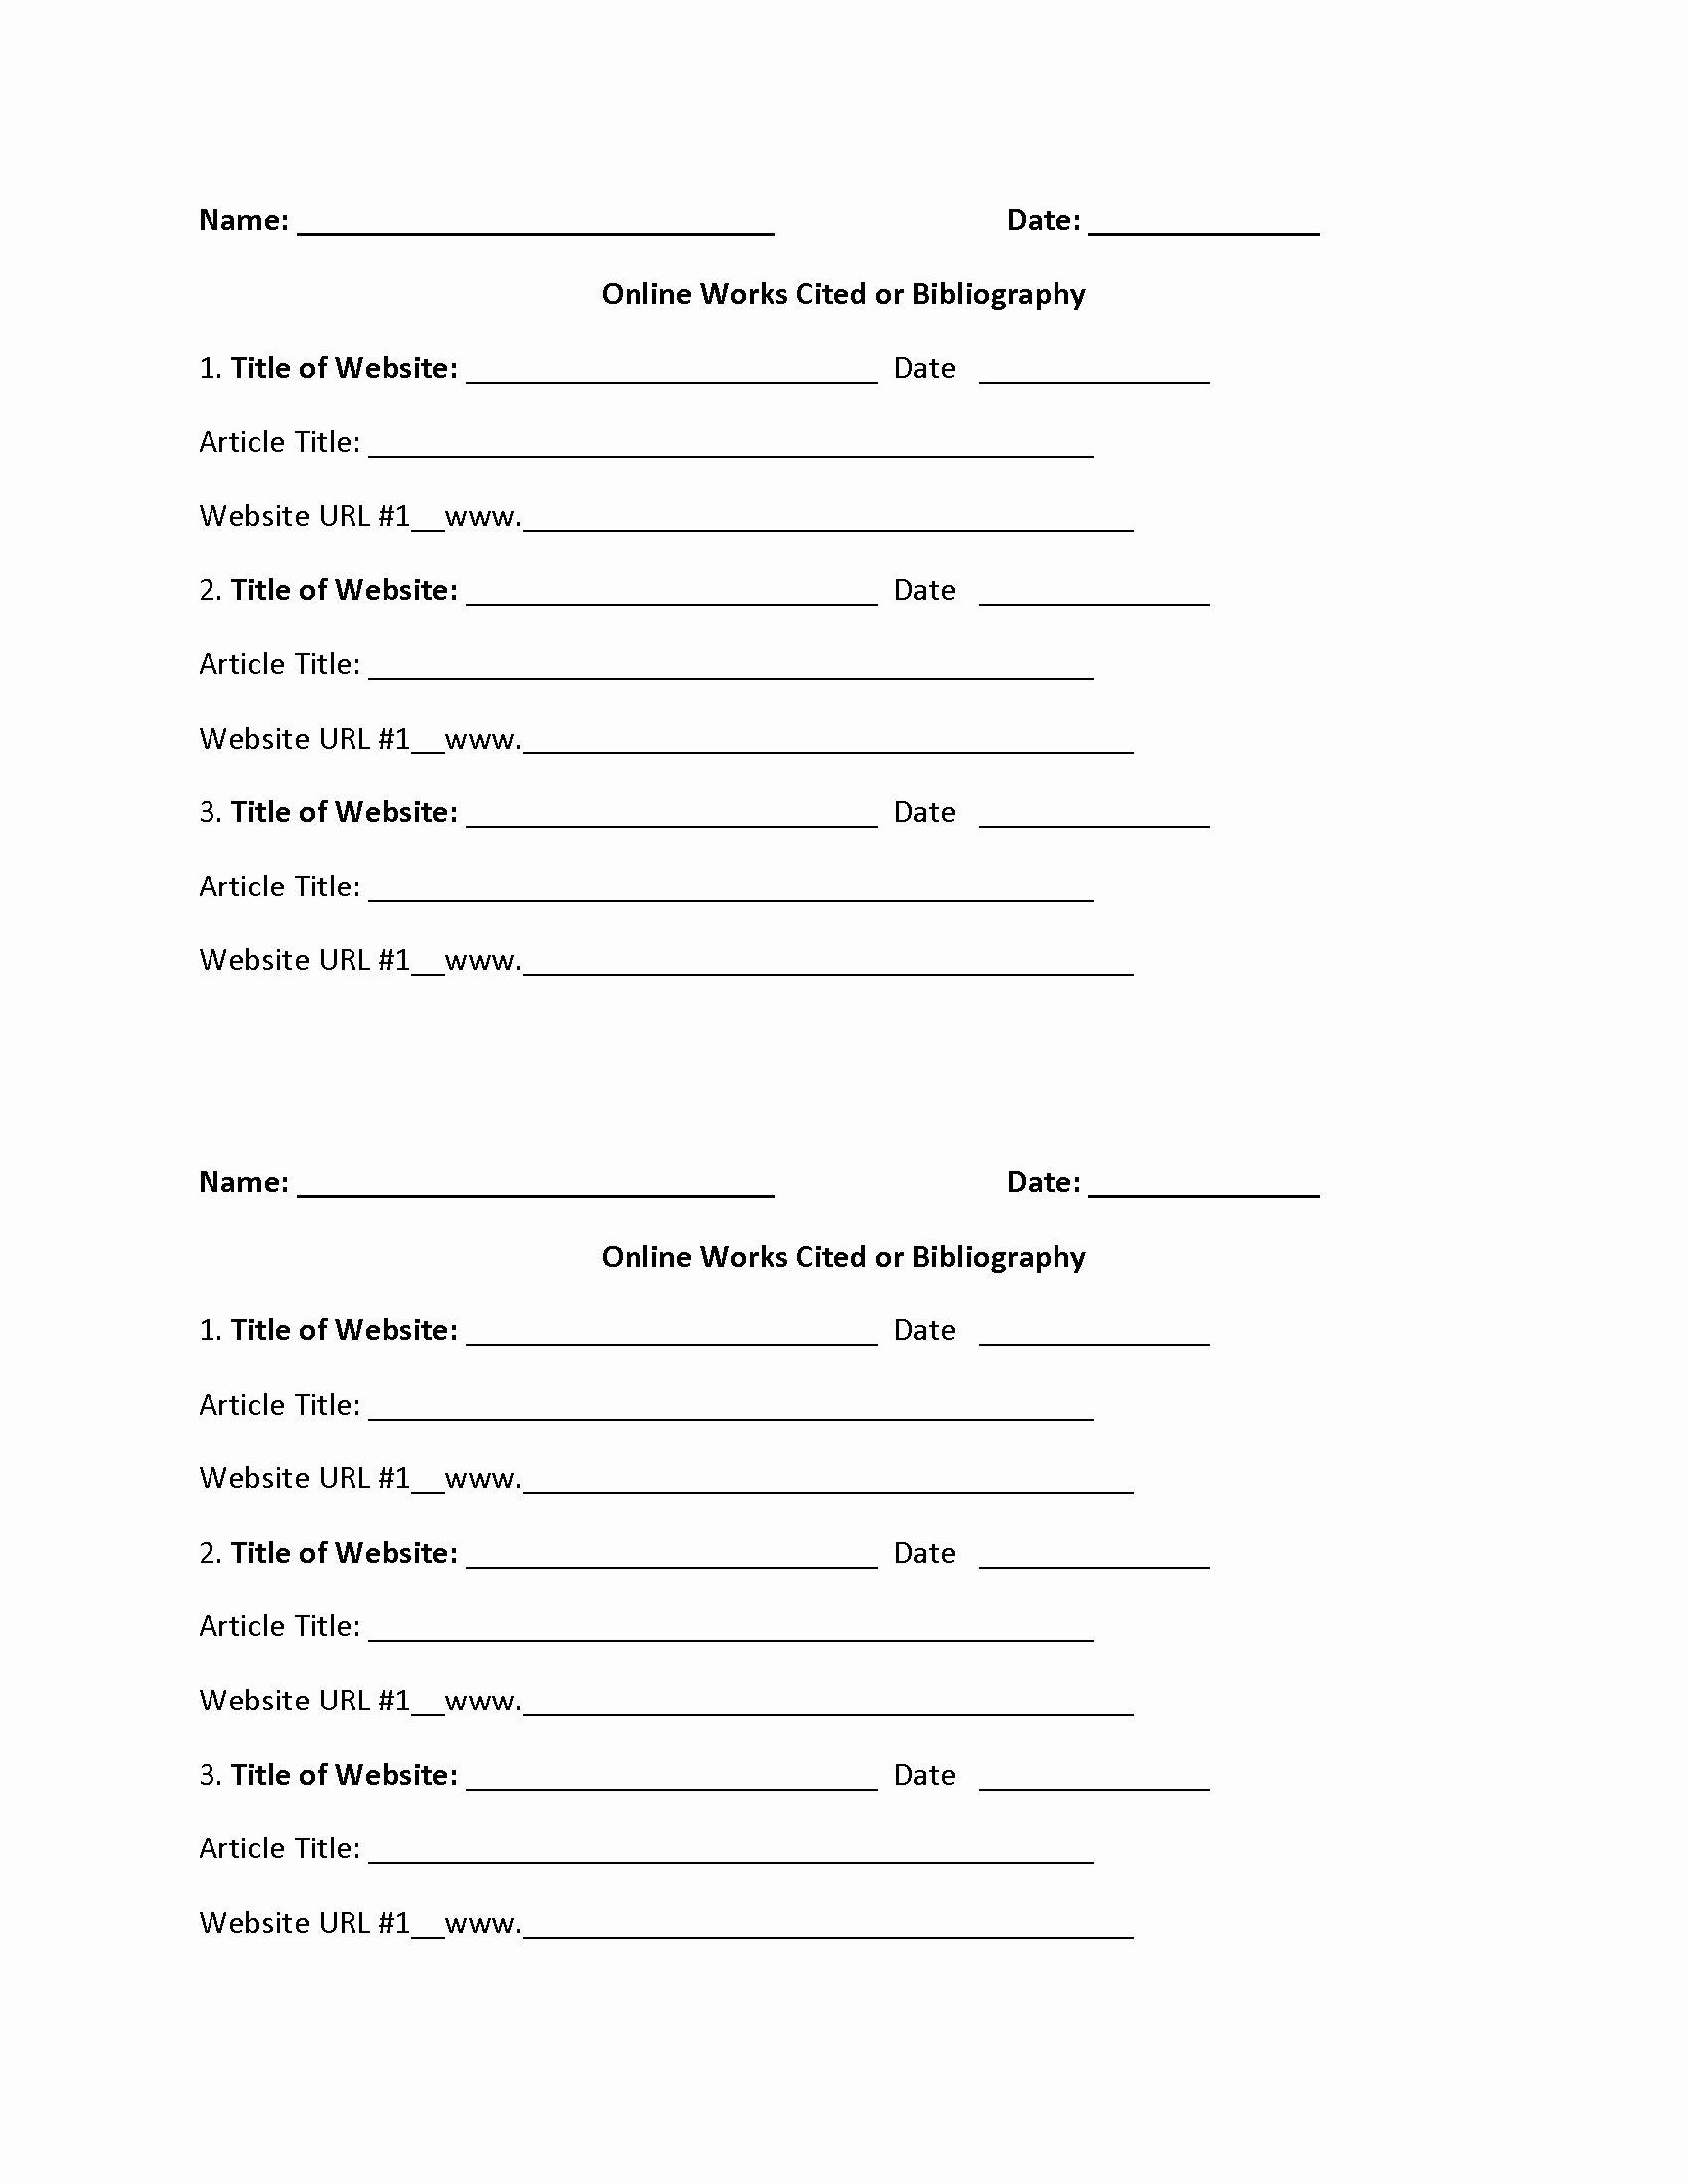 Bibliography Practice Worksheets Best Of Easily 20 Bibliography Practice Worksheets Worksheet